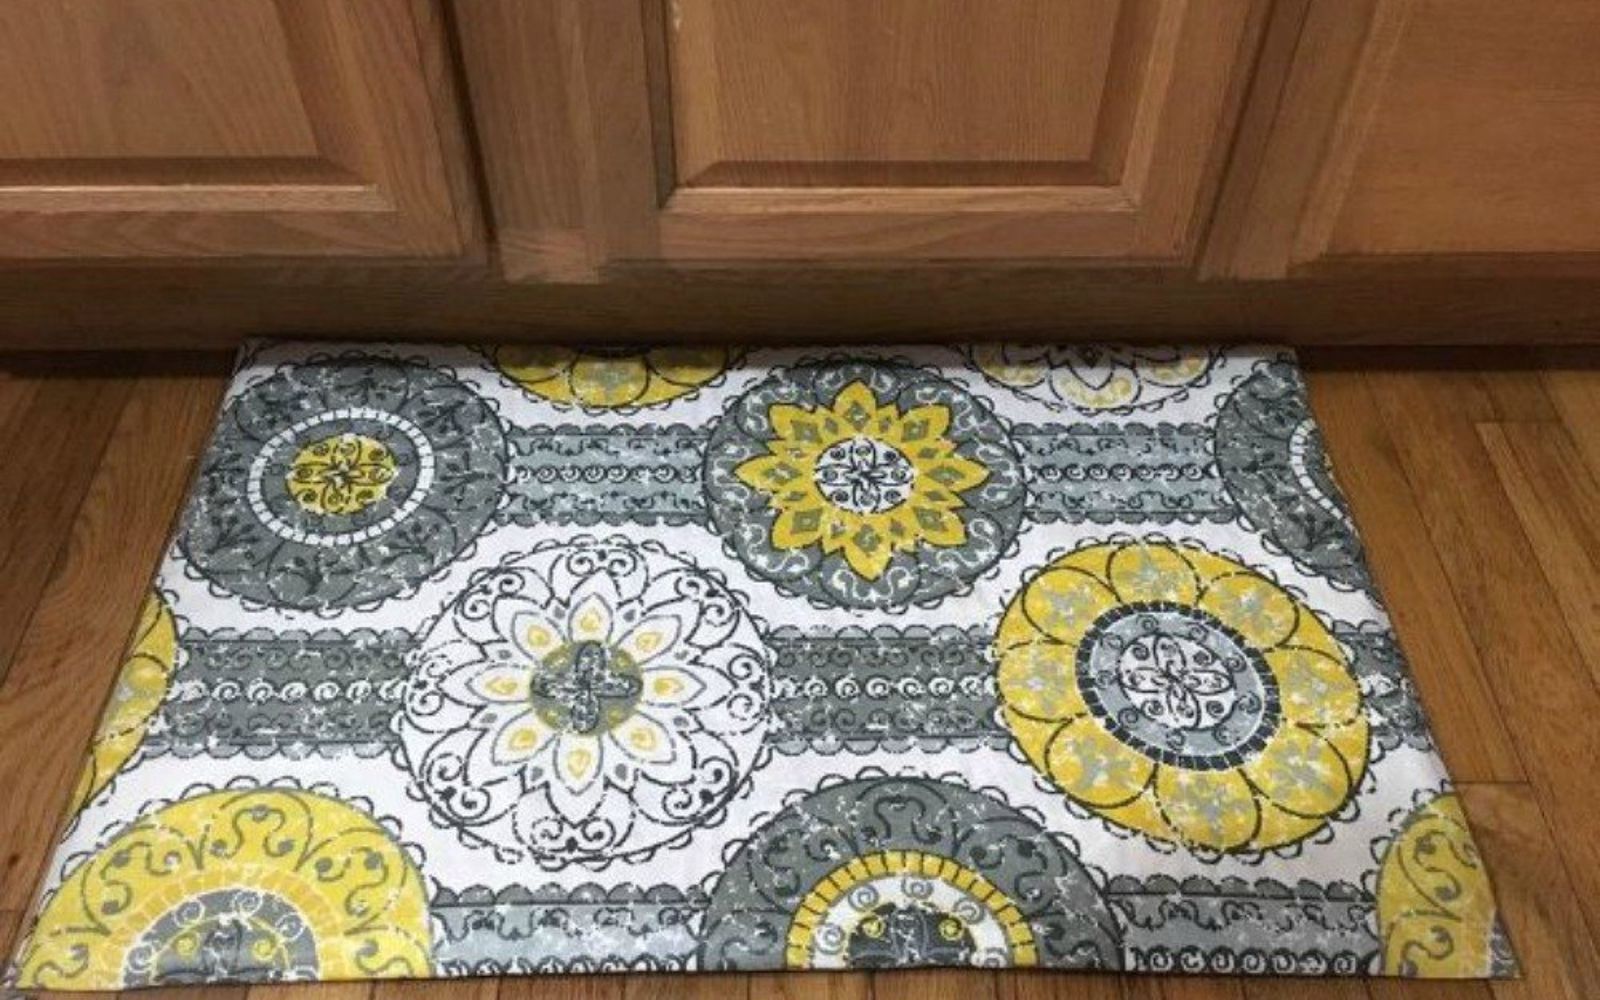 s transform dollar store rugs with these 11 stunning ideas, reupholster, Turn ugly rugs into durable kitchen mats